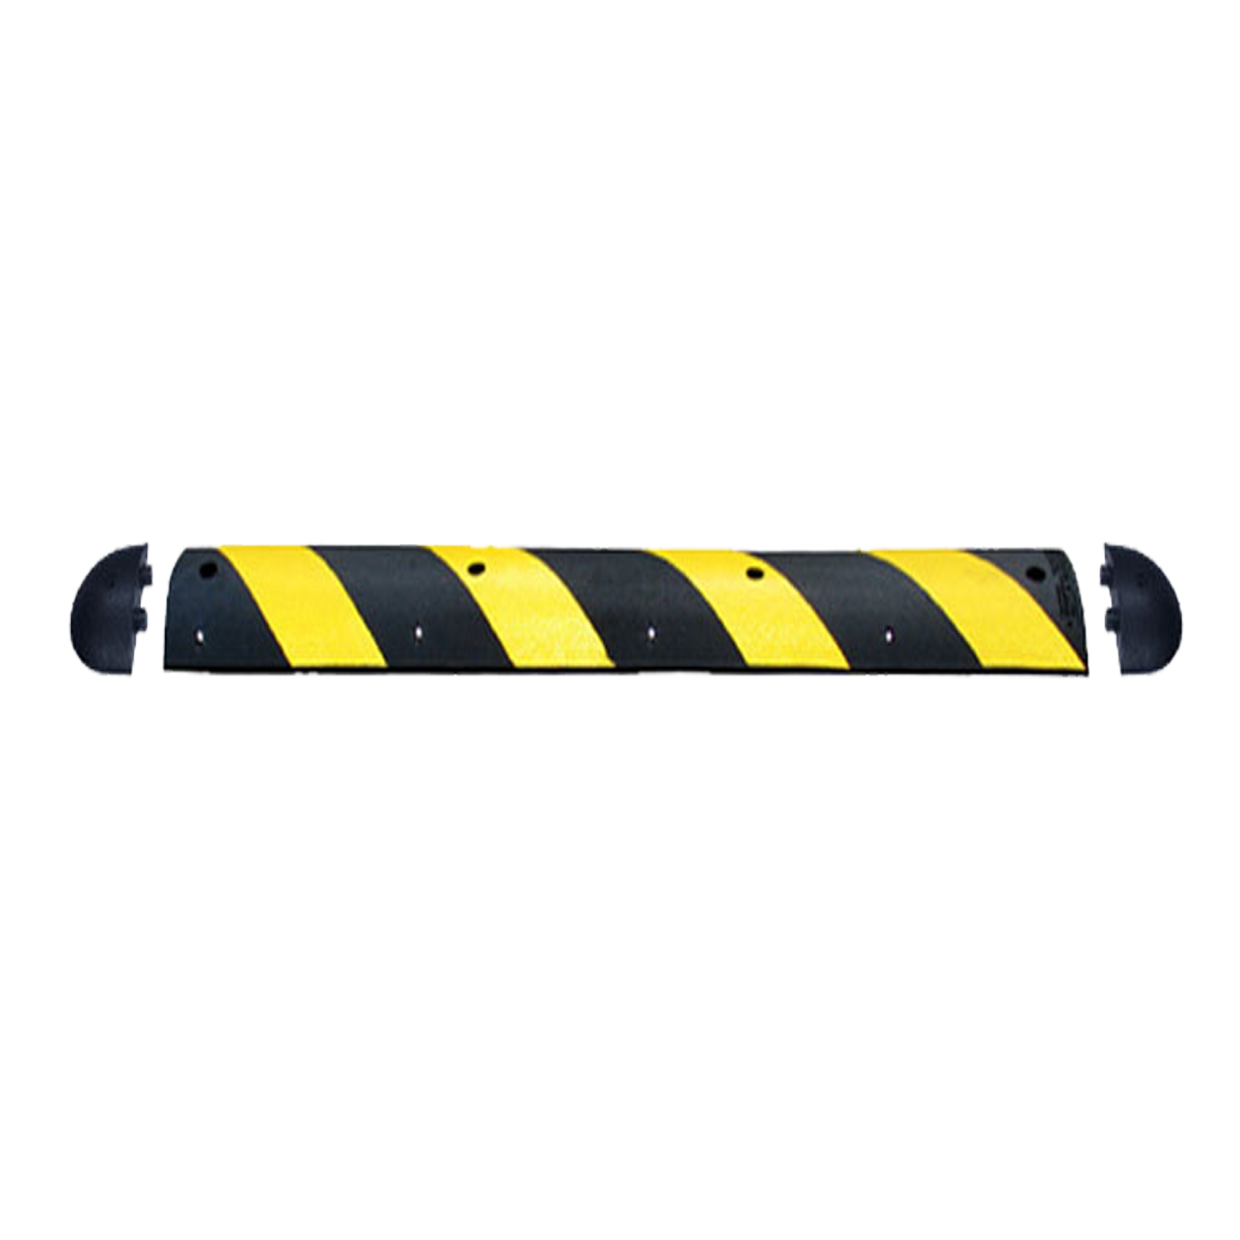 16100-4 16100-6 16100E Speed Bump 4'-6' Striped Yellow HERO